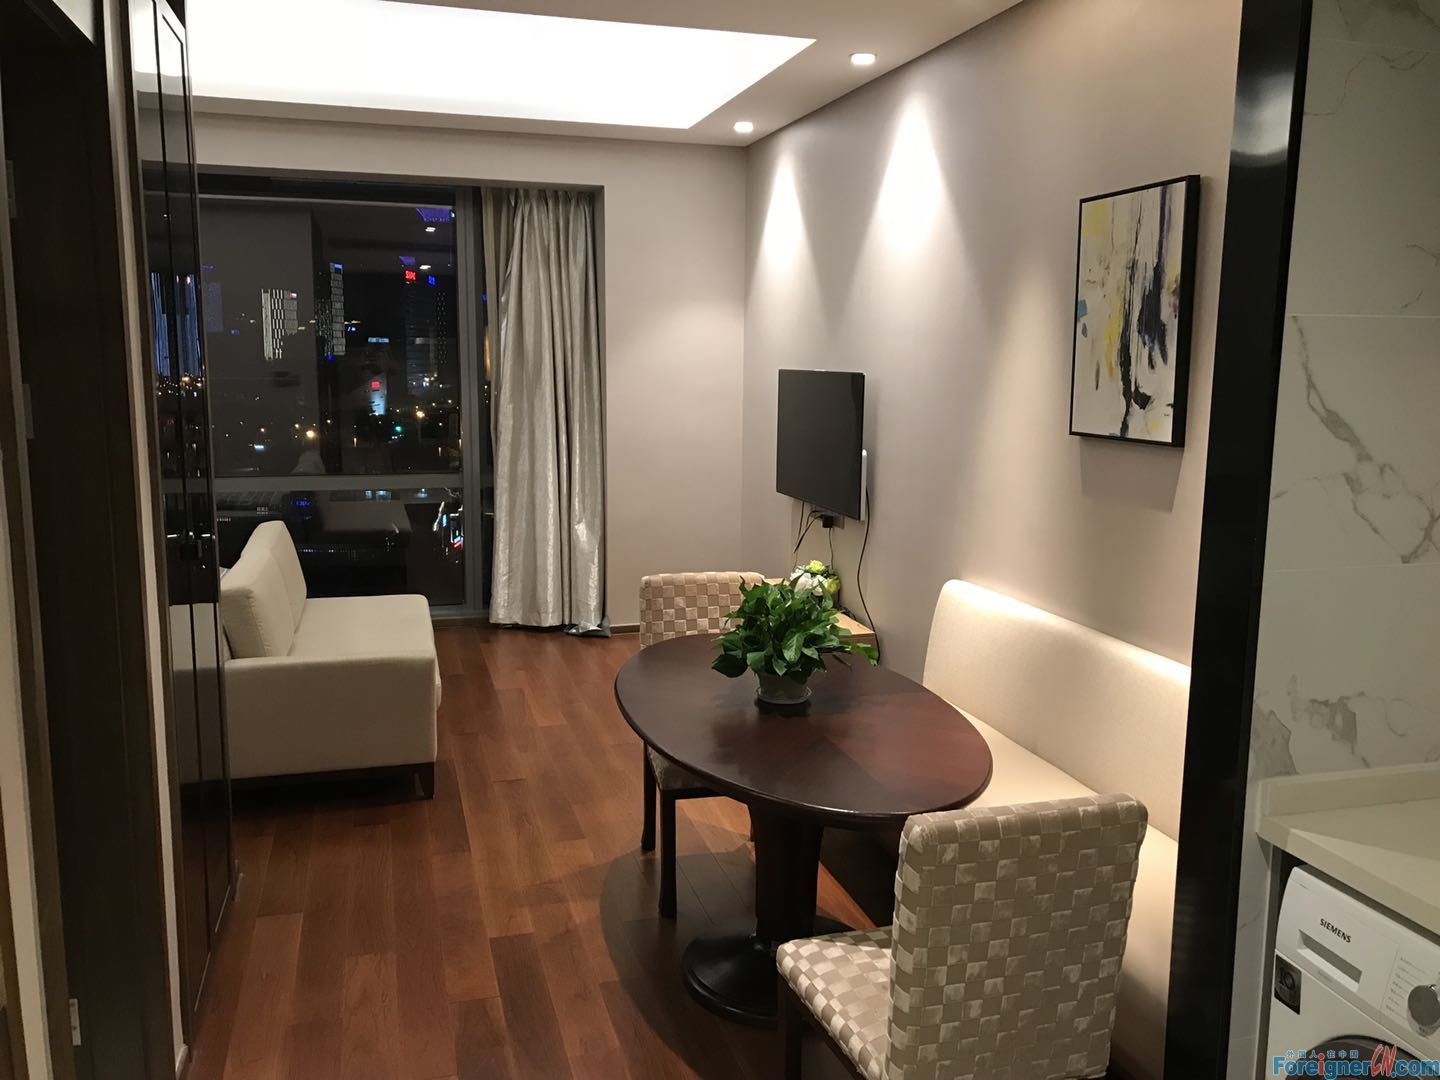 HLCC/Close to Times Square and Subway Line1/1 brd& 1 bath& 1 living room/modern and spacious